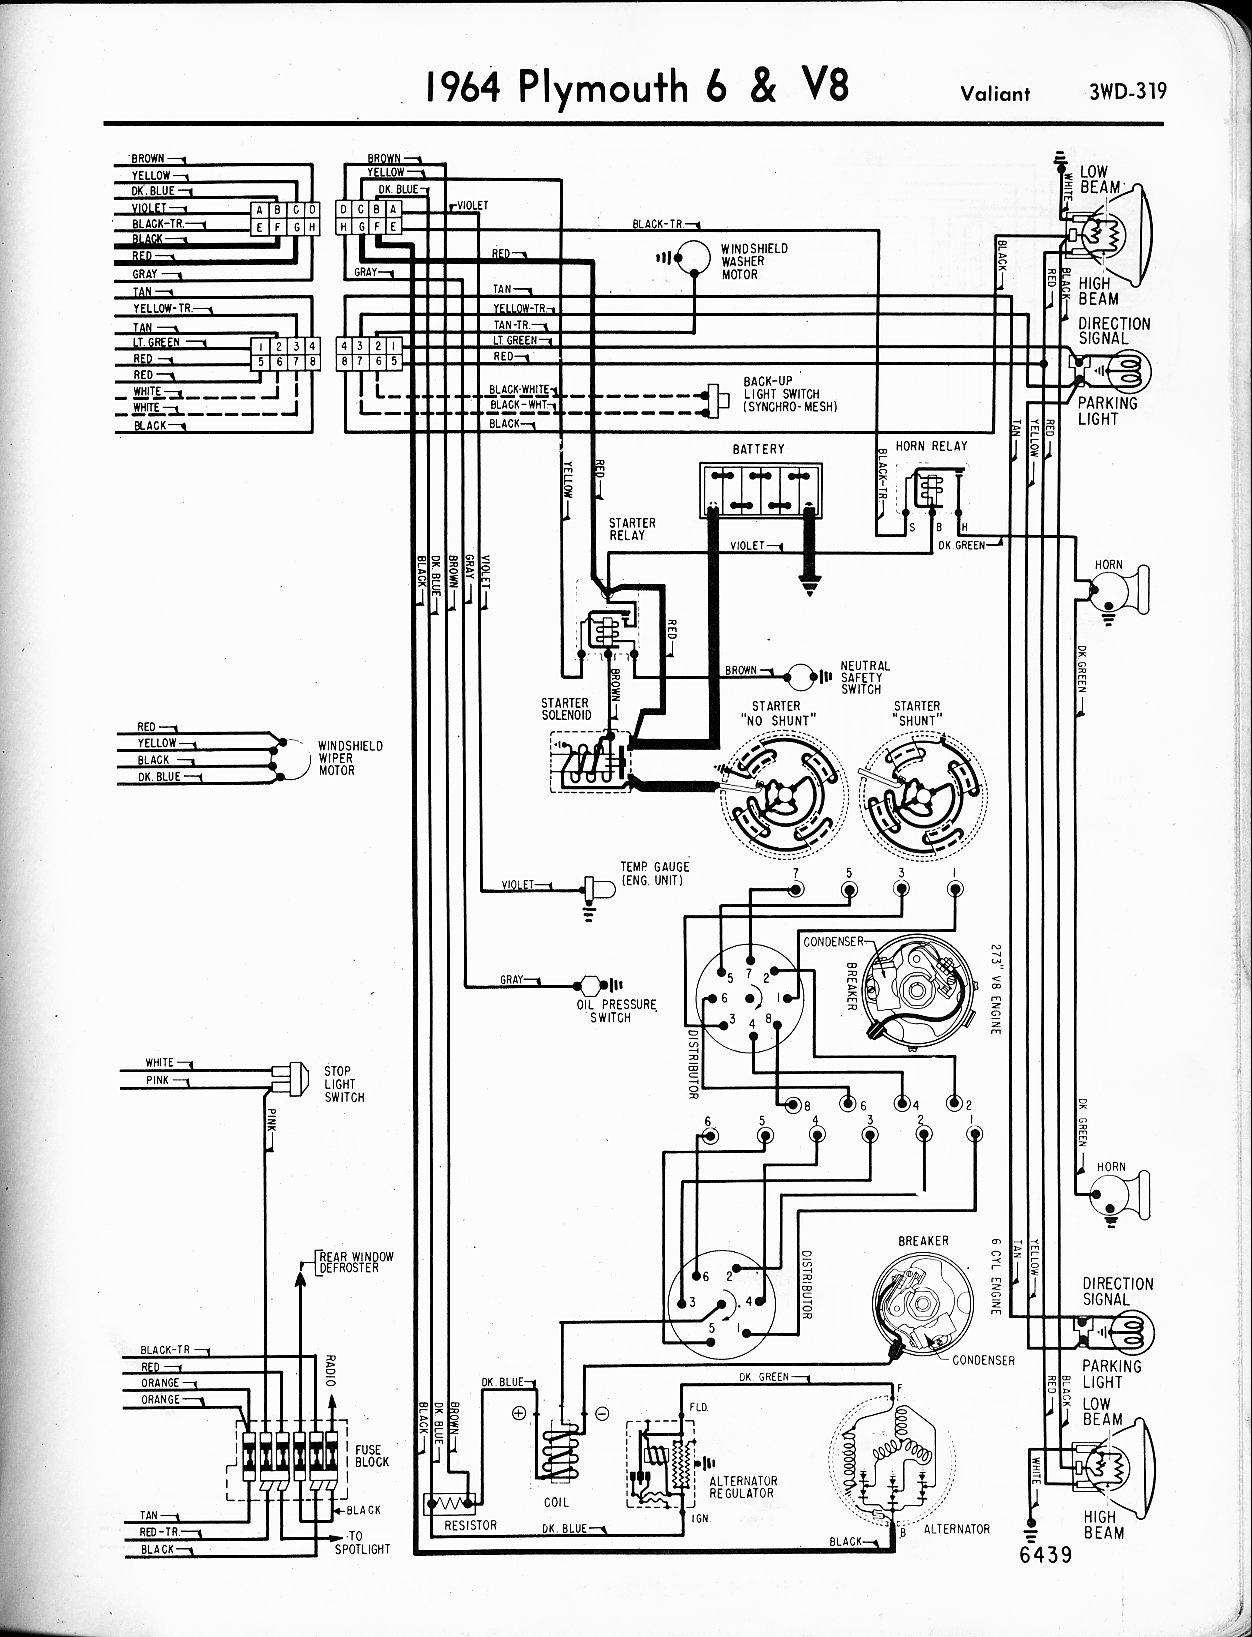 MWire5765 319 1964 plymouth wiring diagram 1964 wiring diagrams instruction 1954 plymouth belvedere wiring diagram at crackthecode.co